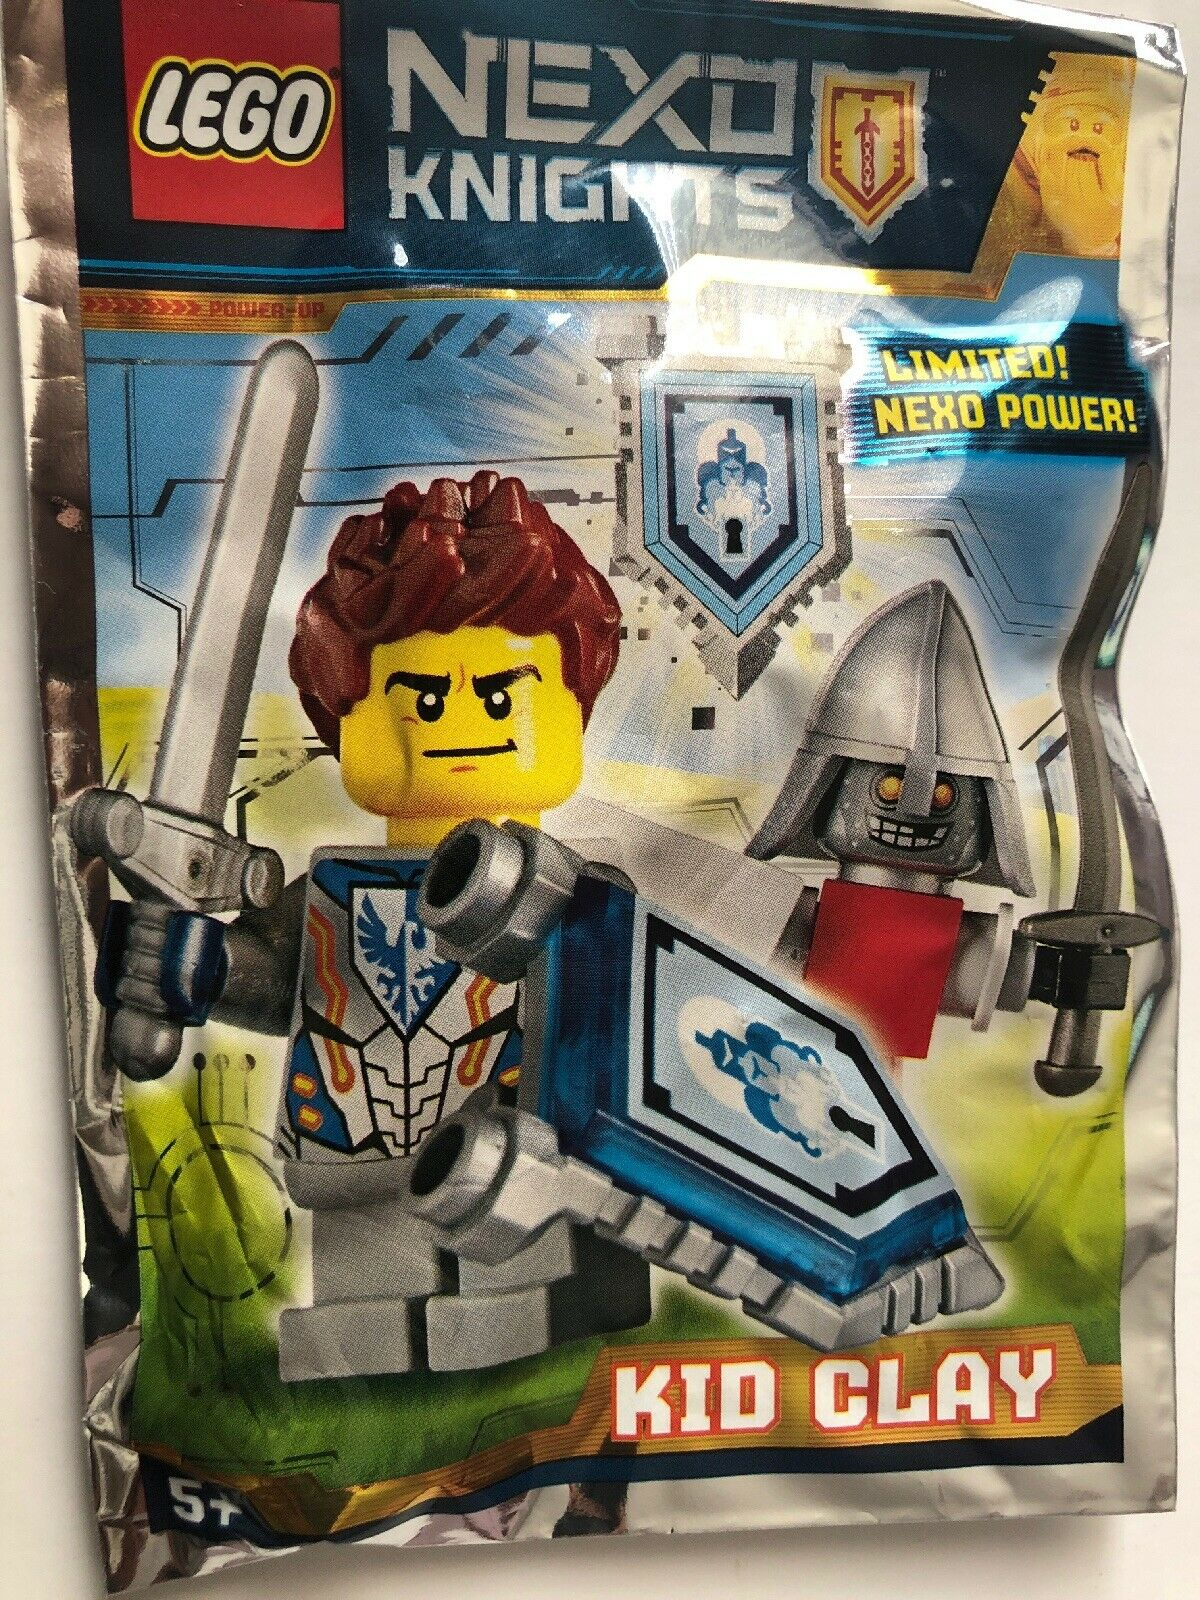 NEW LEGO Polybag Foil Pack 271608 NEXO KNIGHTS Kid Clay